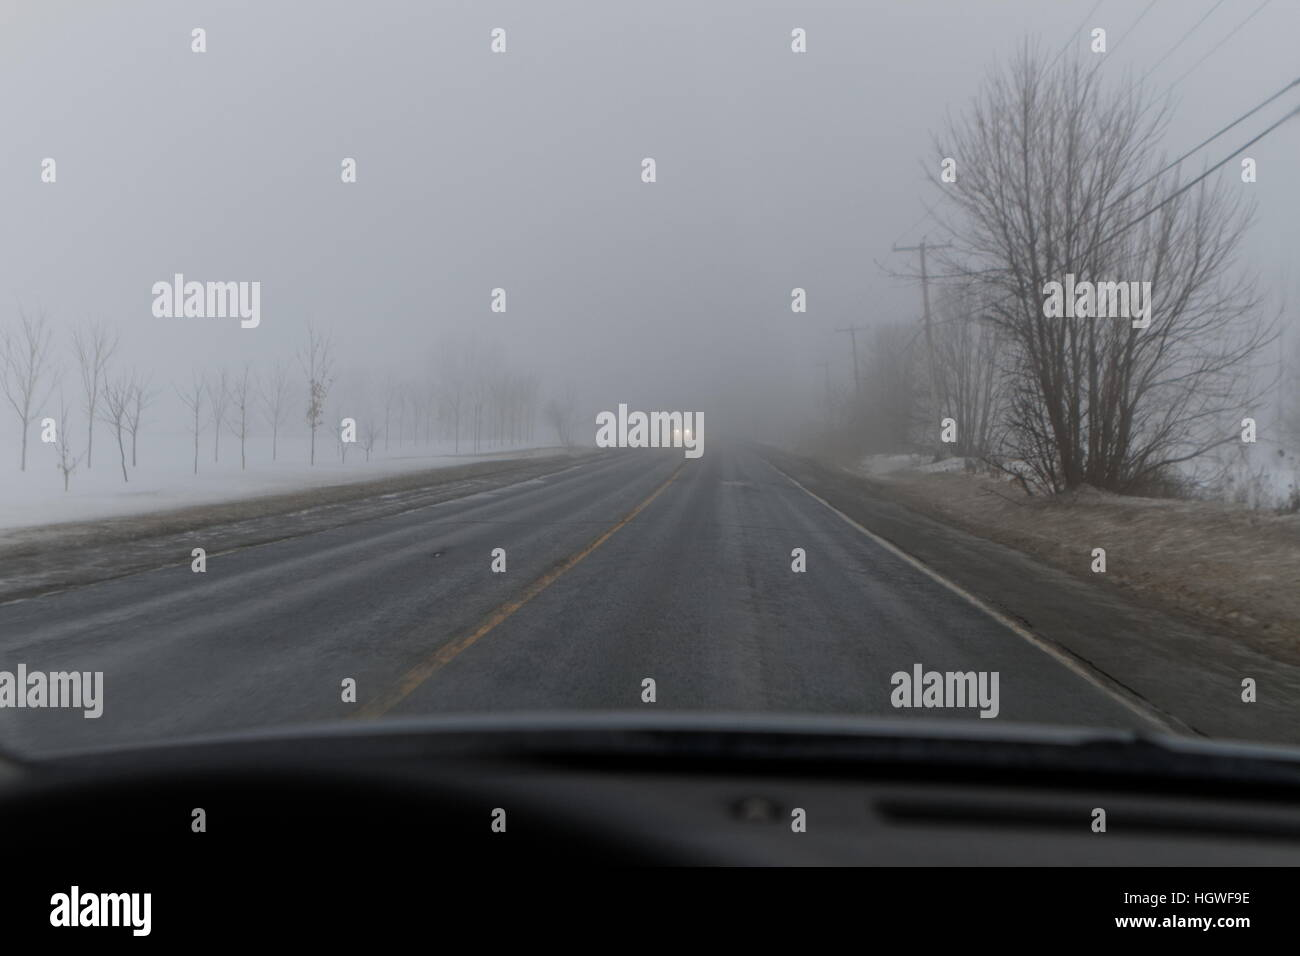 Driving in winter fog - Stock Image